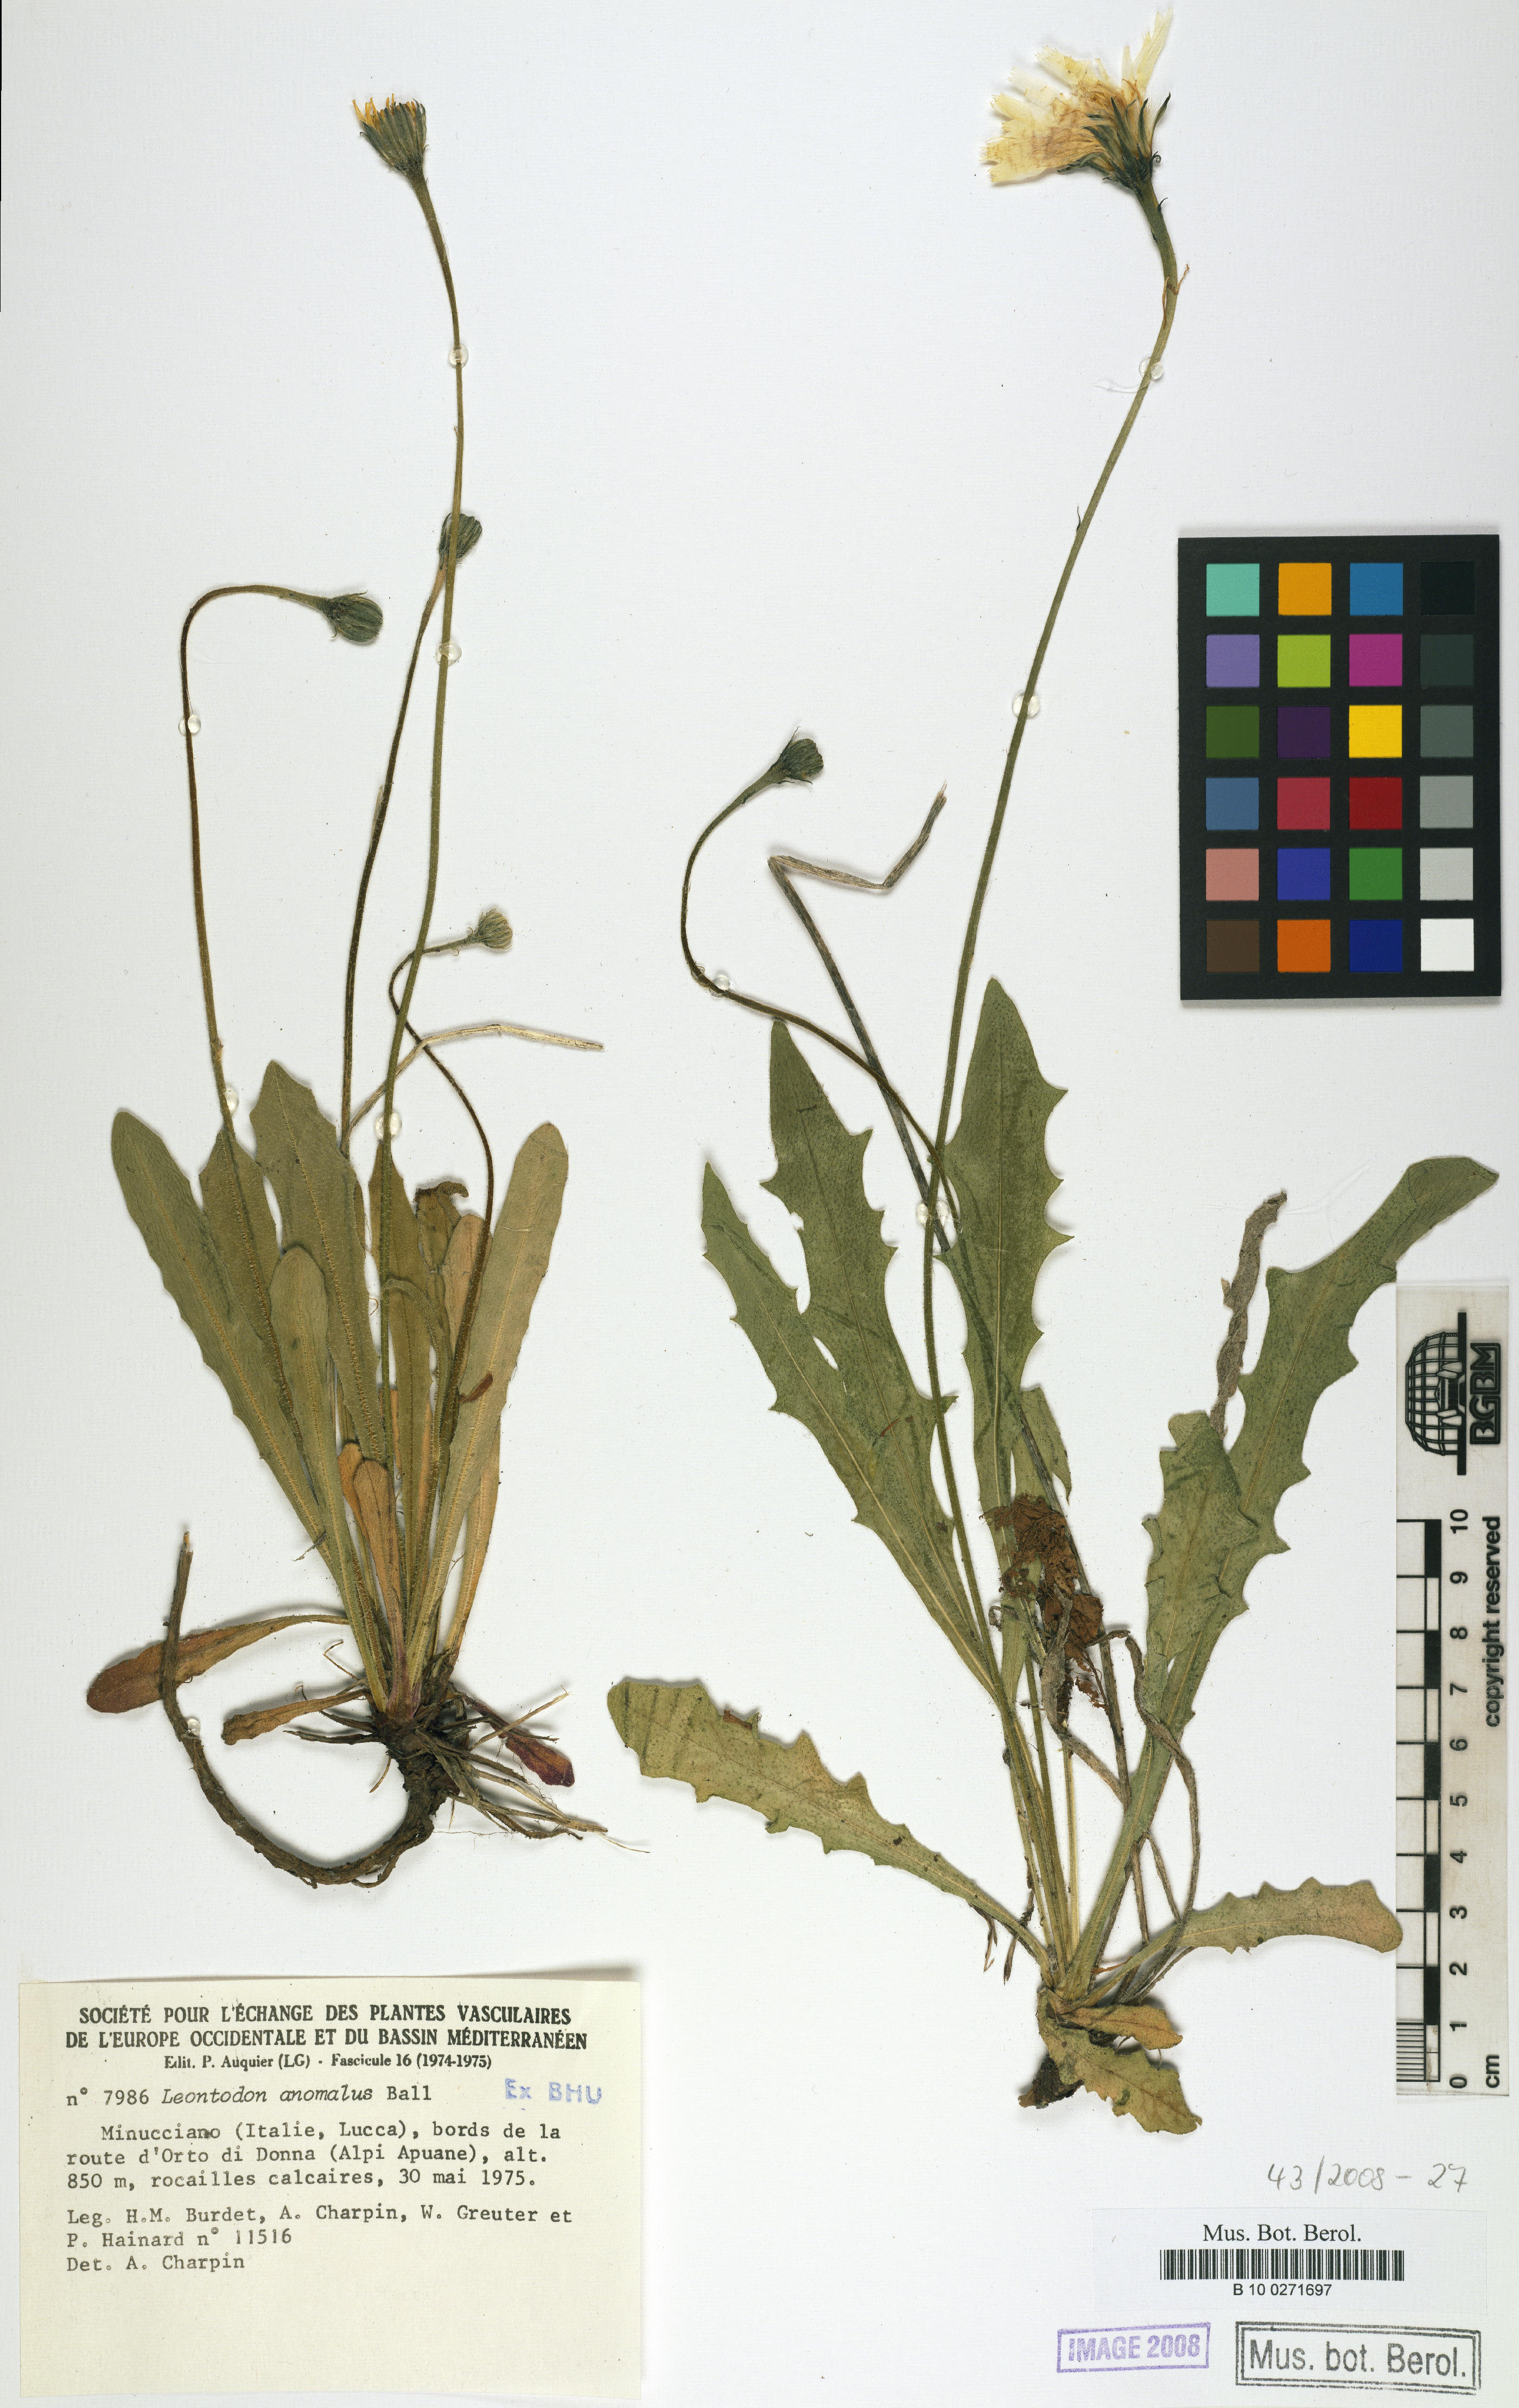 © Botanic Garden and Botanical Museum Berlin-Dahlem, Freie Universität Berlin<br>by Röpert, D. (Ed.) 2000- (continuously updated): Digital specimen images at the Herbarium Berolinense. - Published on the Internet http://ww2.bgbm.org/herbarium/ (Barcode: B 10 0271697 / ImageId: 268498) [accessed 26-Nov-11].<br>